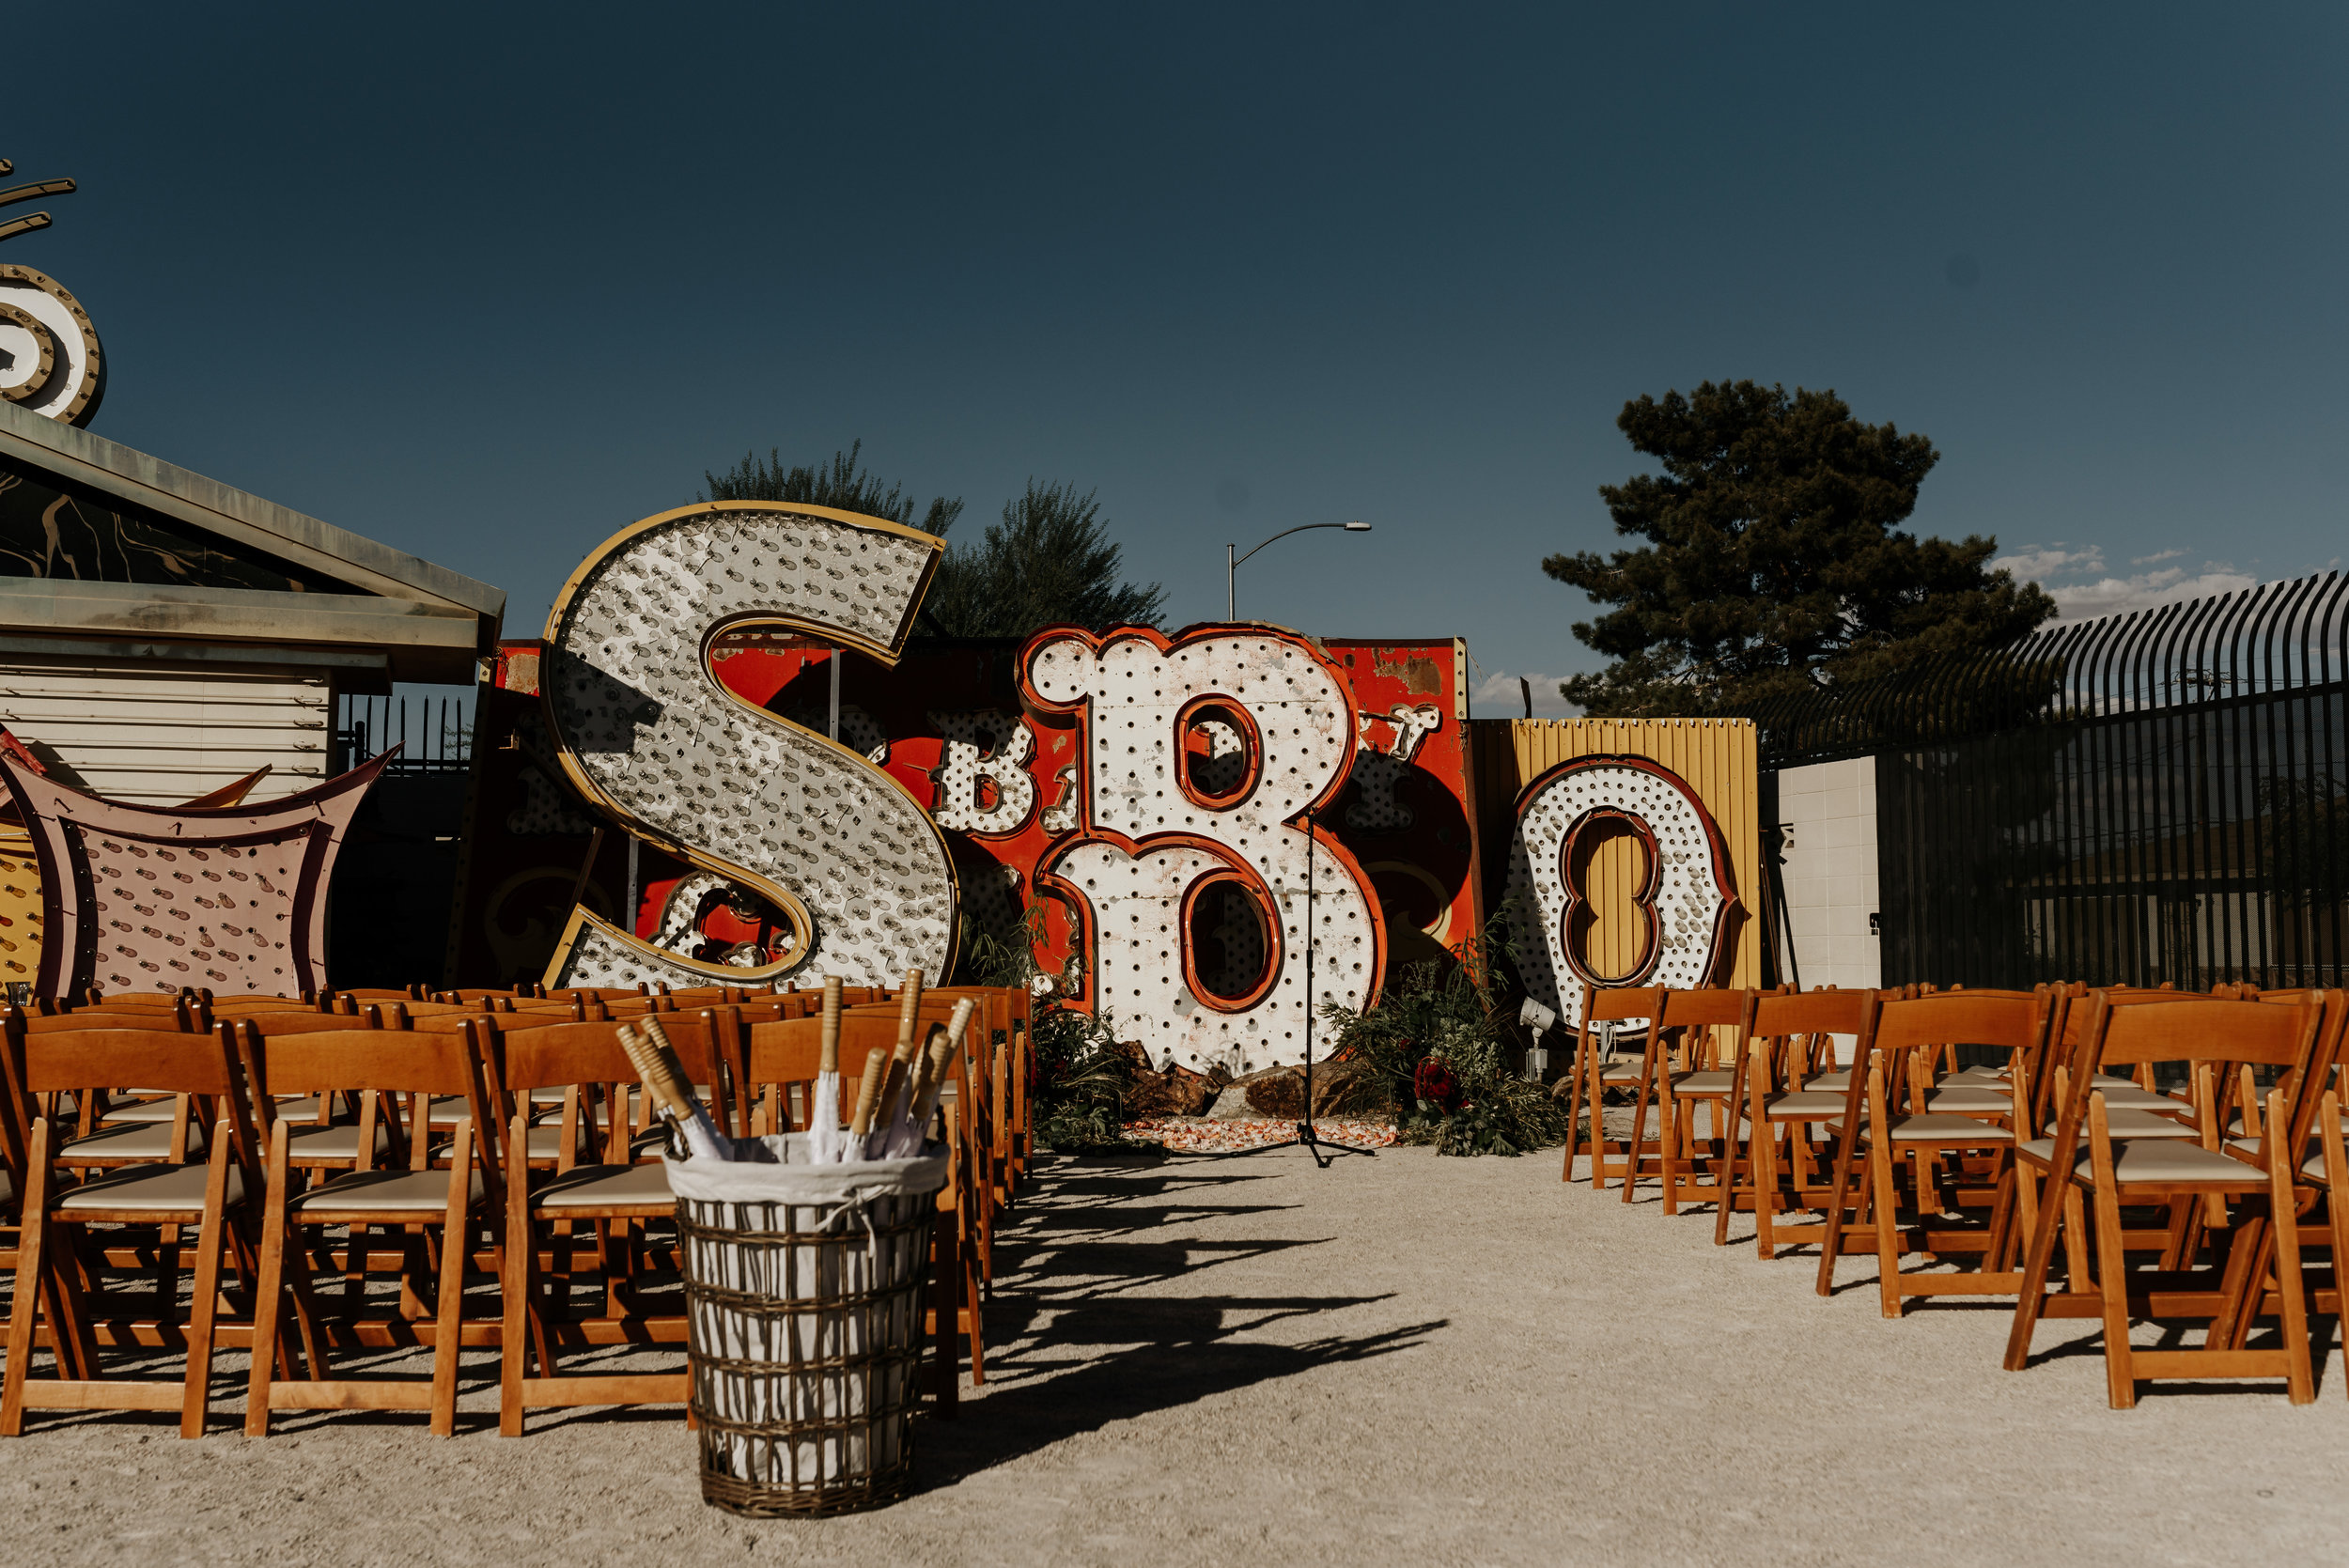 Neon-Museum-Wedding-Las-Vegas-Nevada-Golden-Nugget-Photography-by-V-Ally-and-Dan-2793.jpg